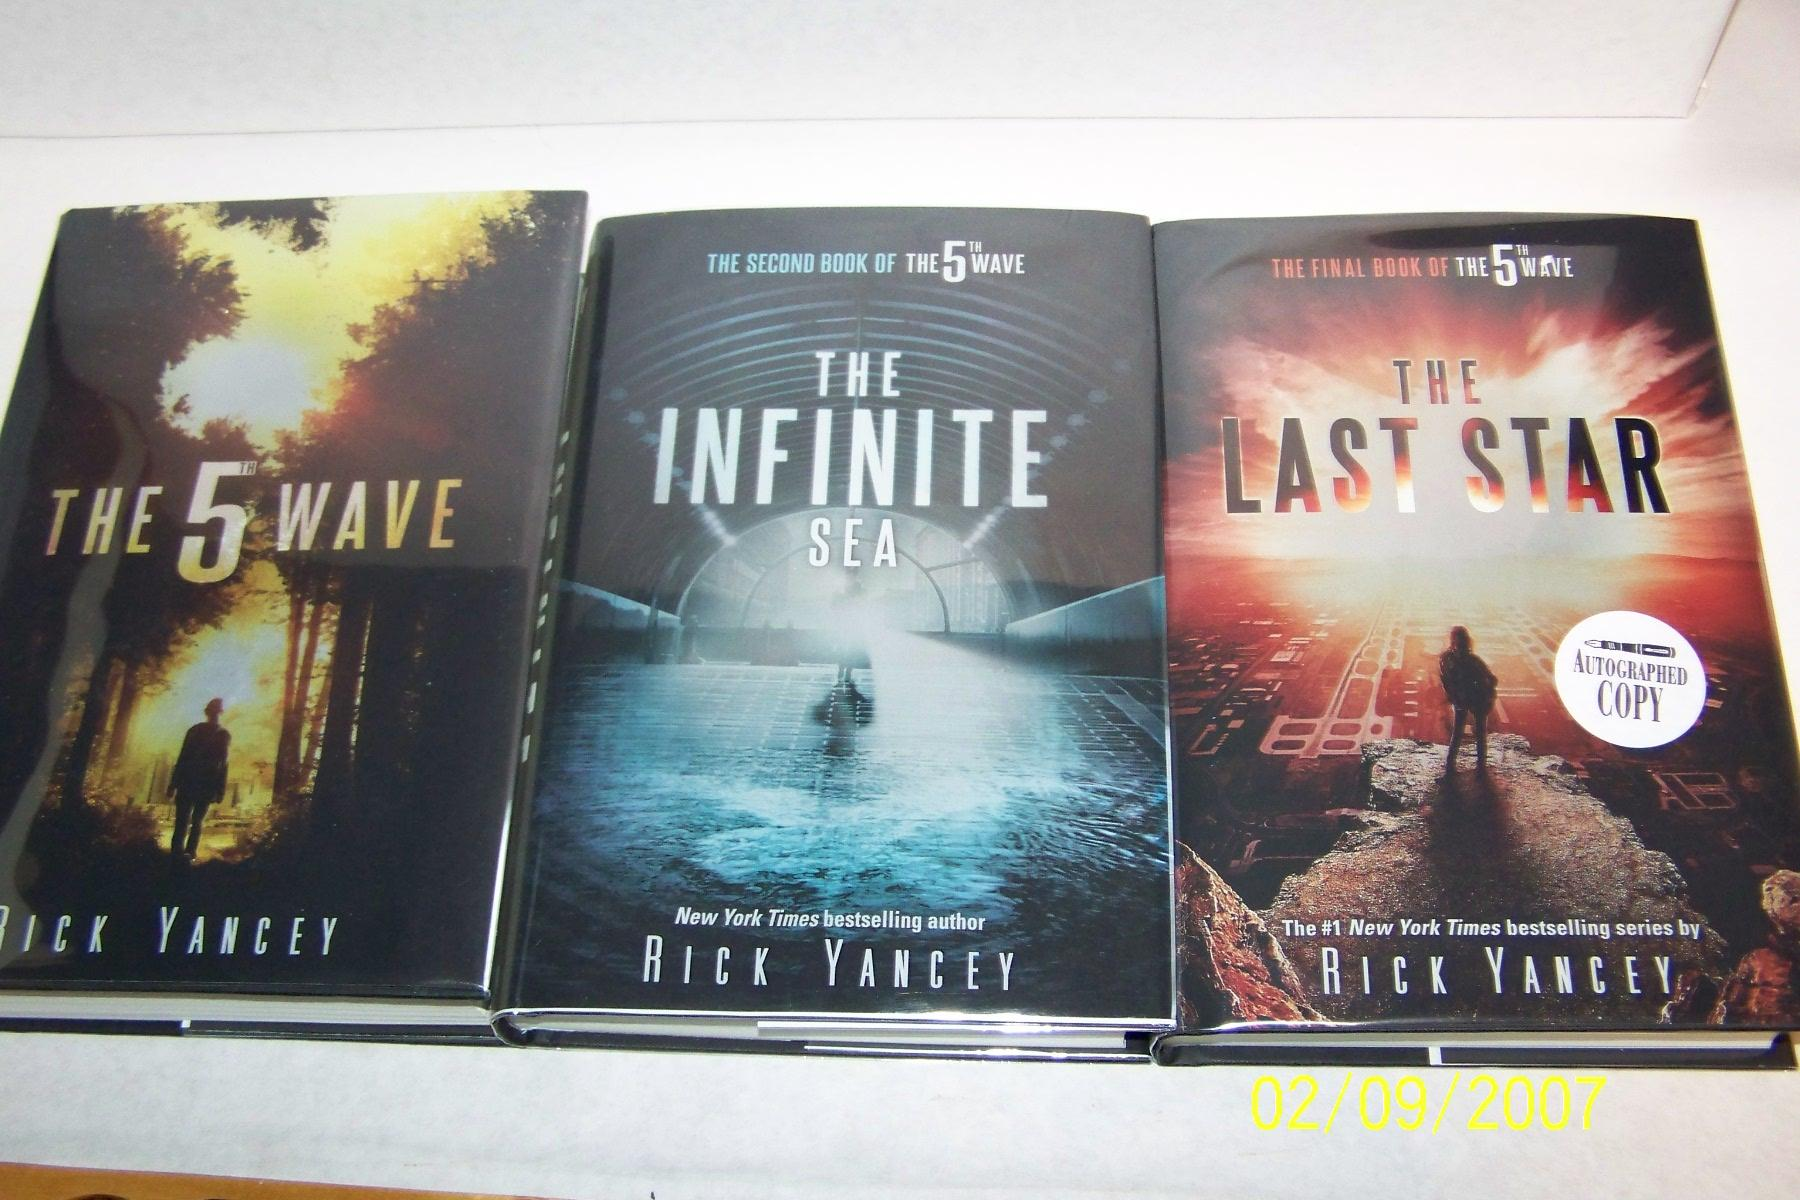 The 5th Wave, The Infinite Sea and The Last Star par Rick